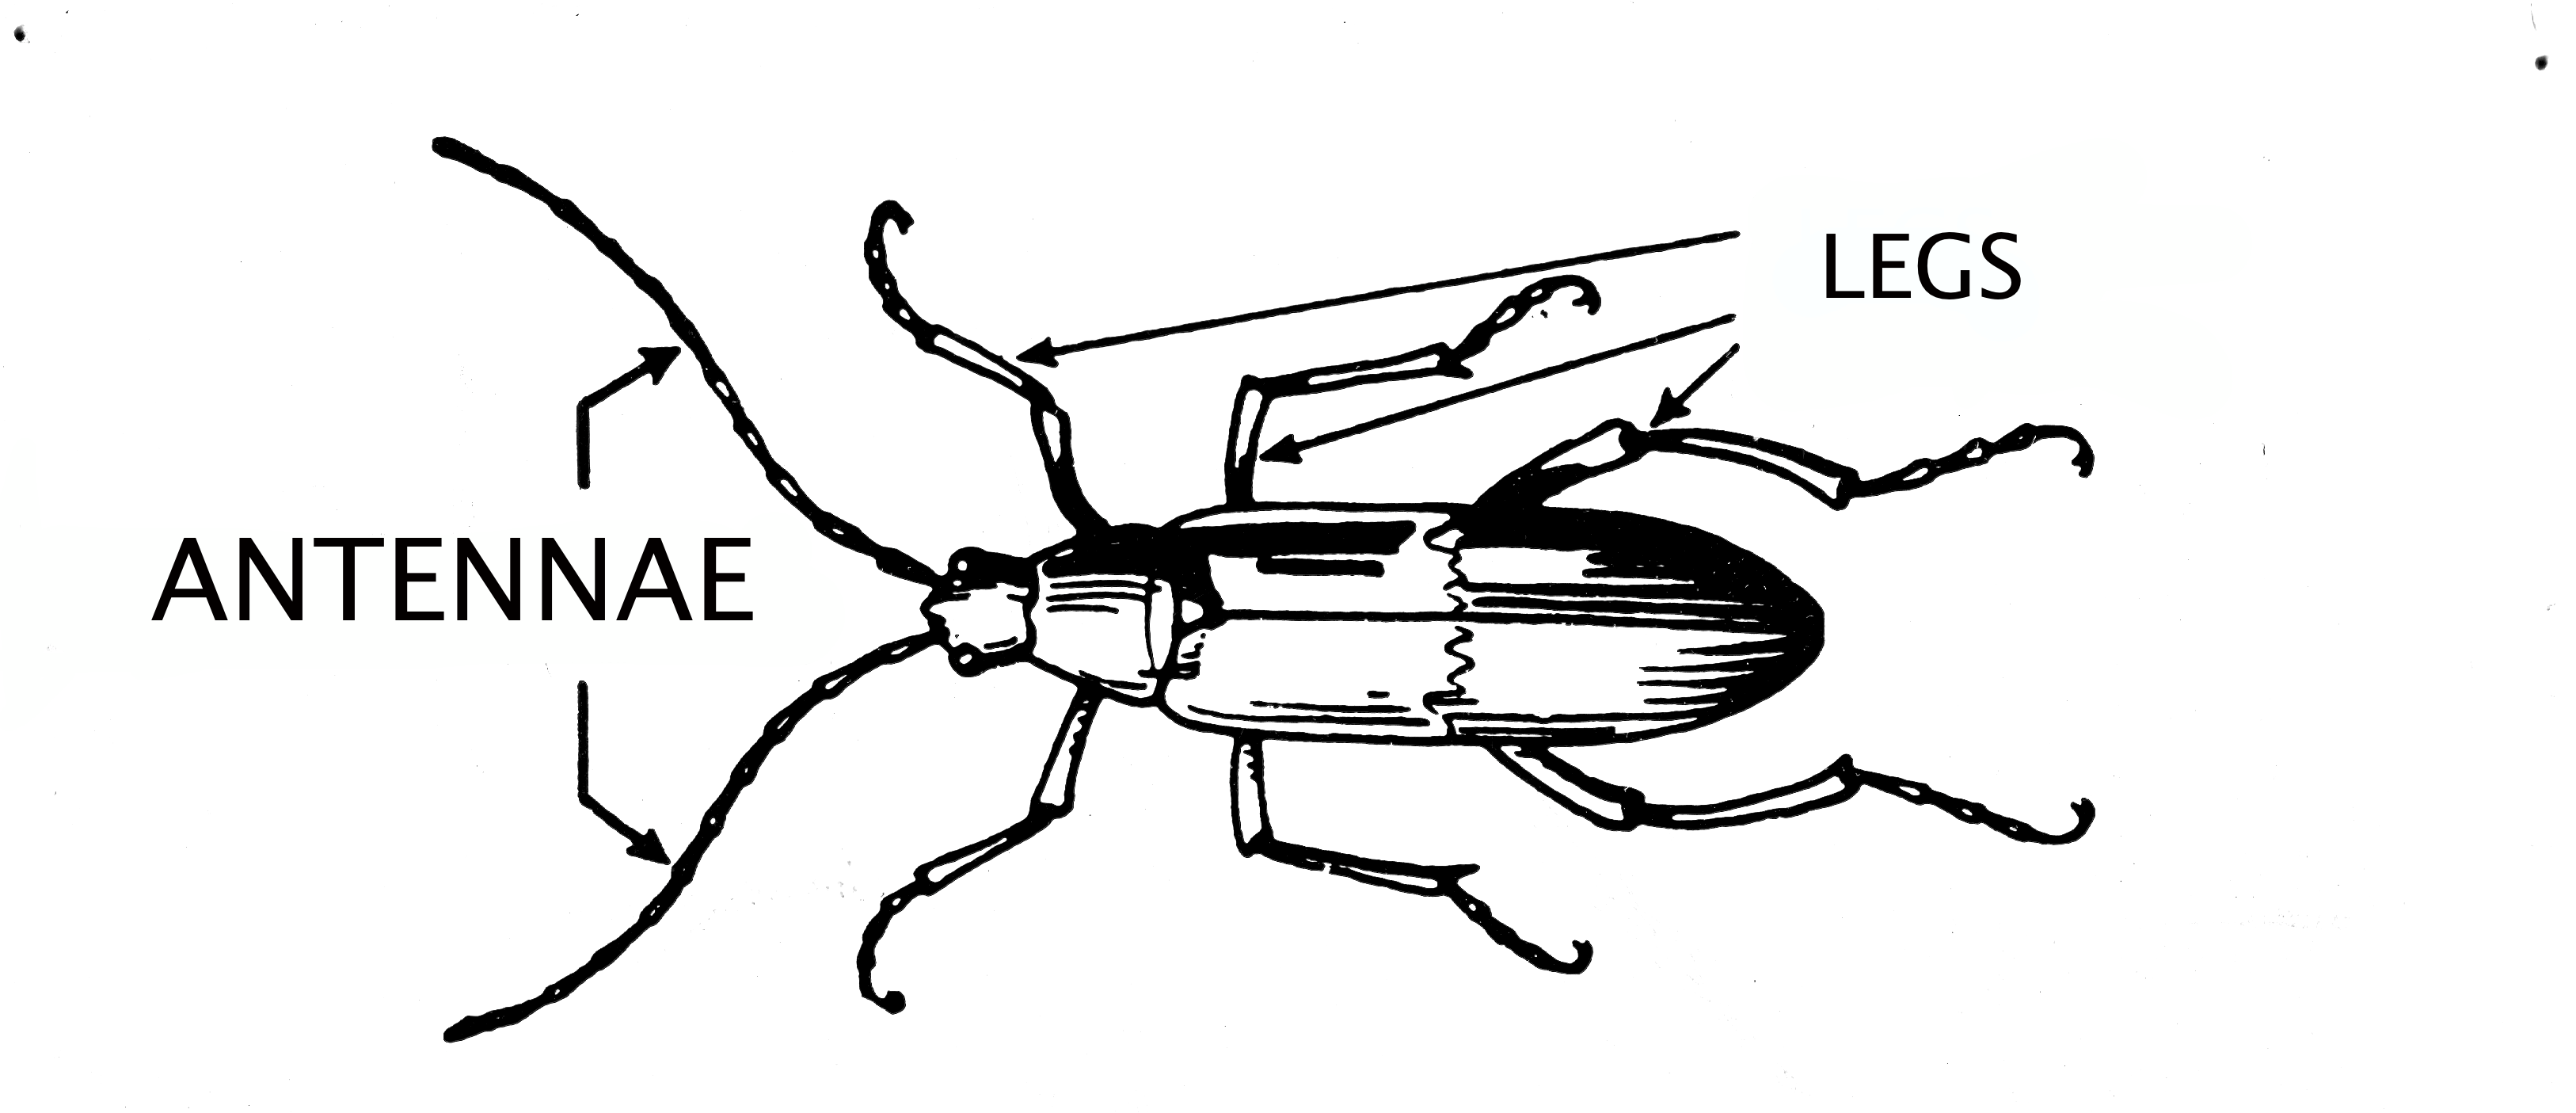 File:Antennae (Insect) 001.png - The Work of God's Children